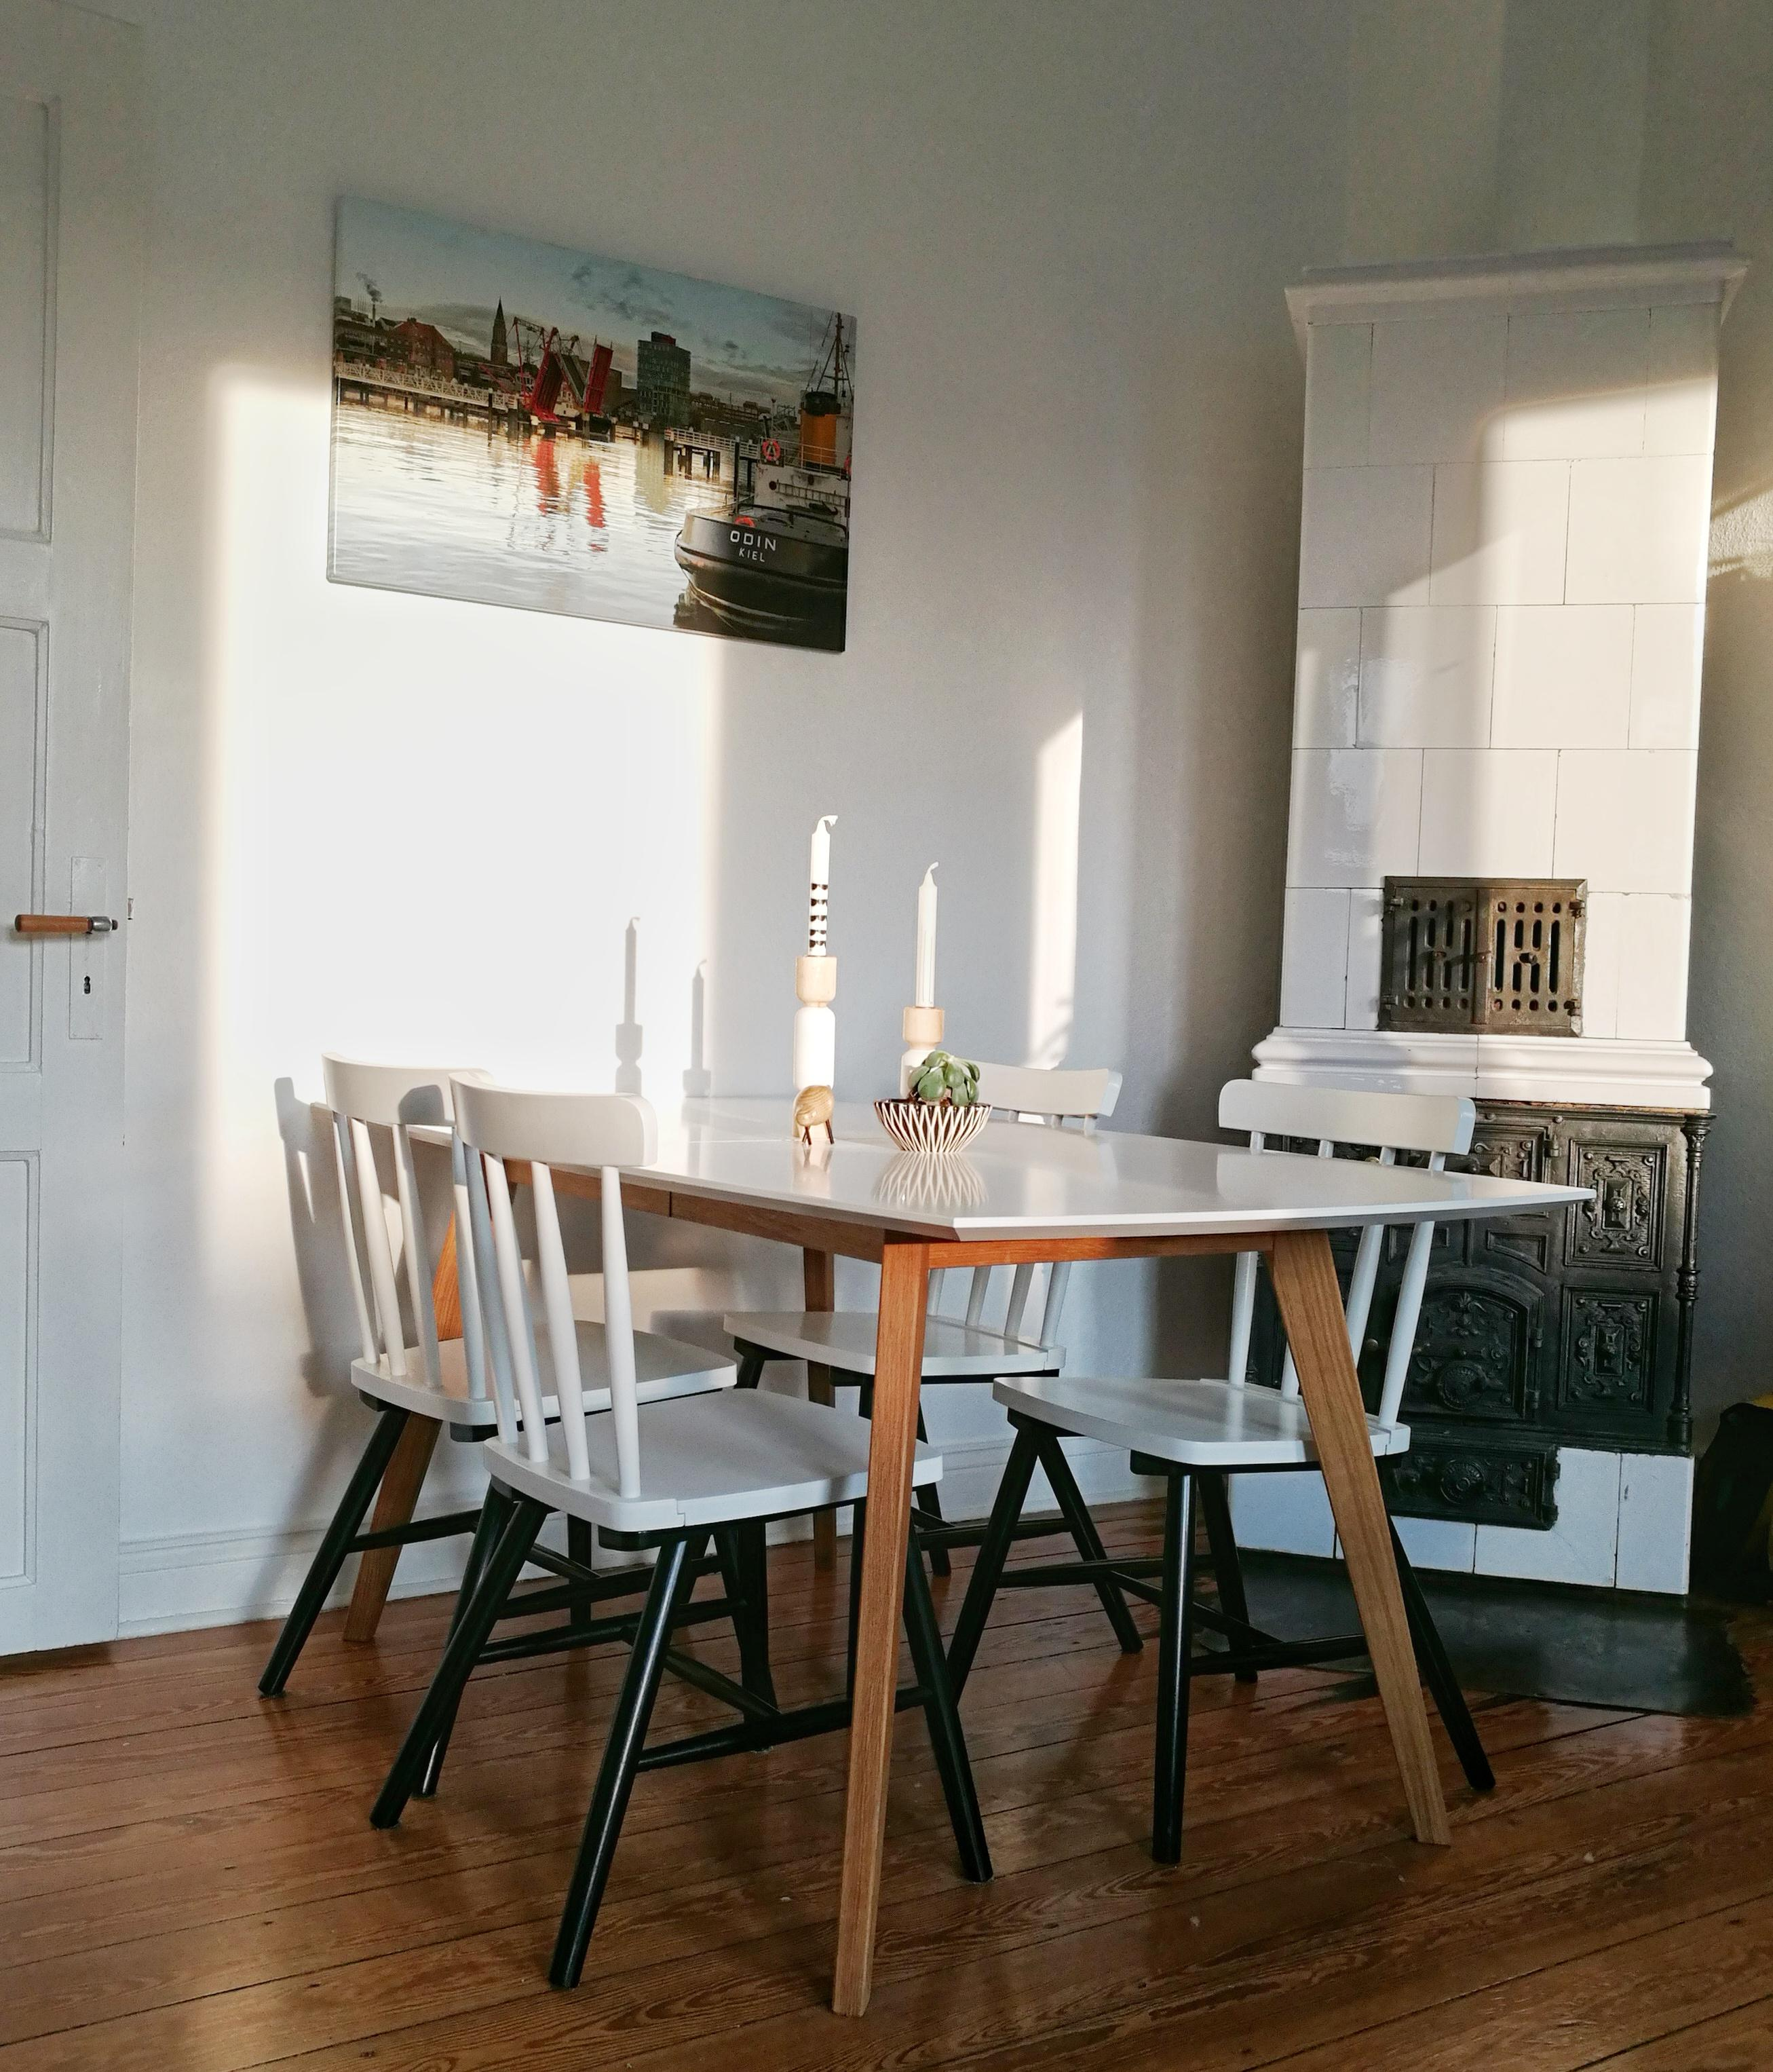 Abendsonne einfangen. #altbau #nordic #ofen #furniture #interior #scandi